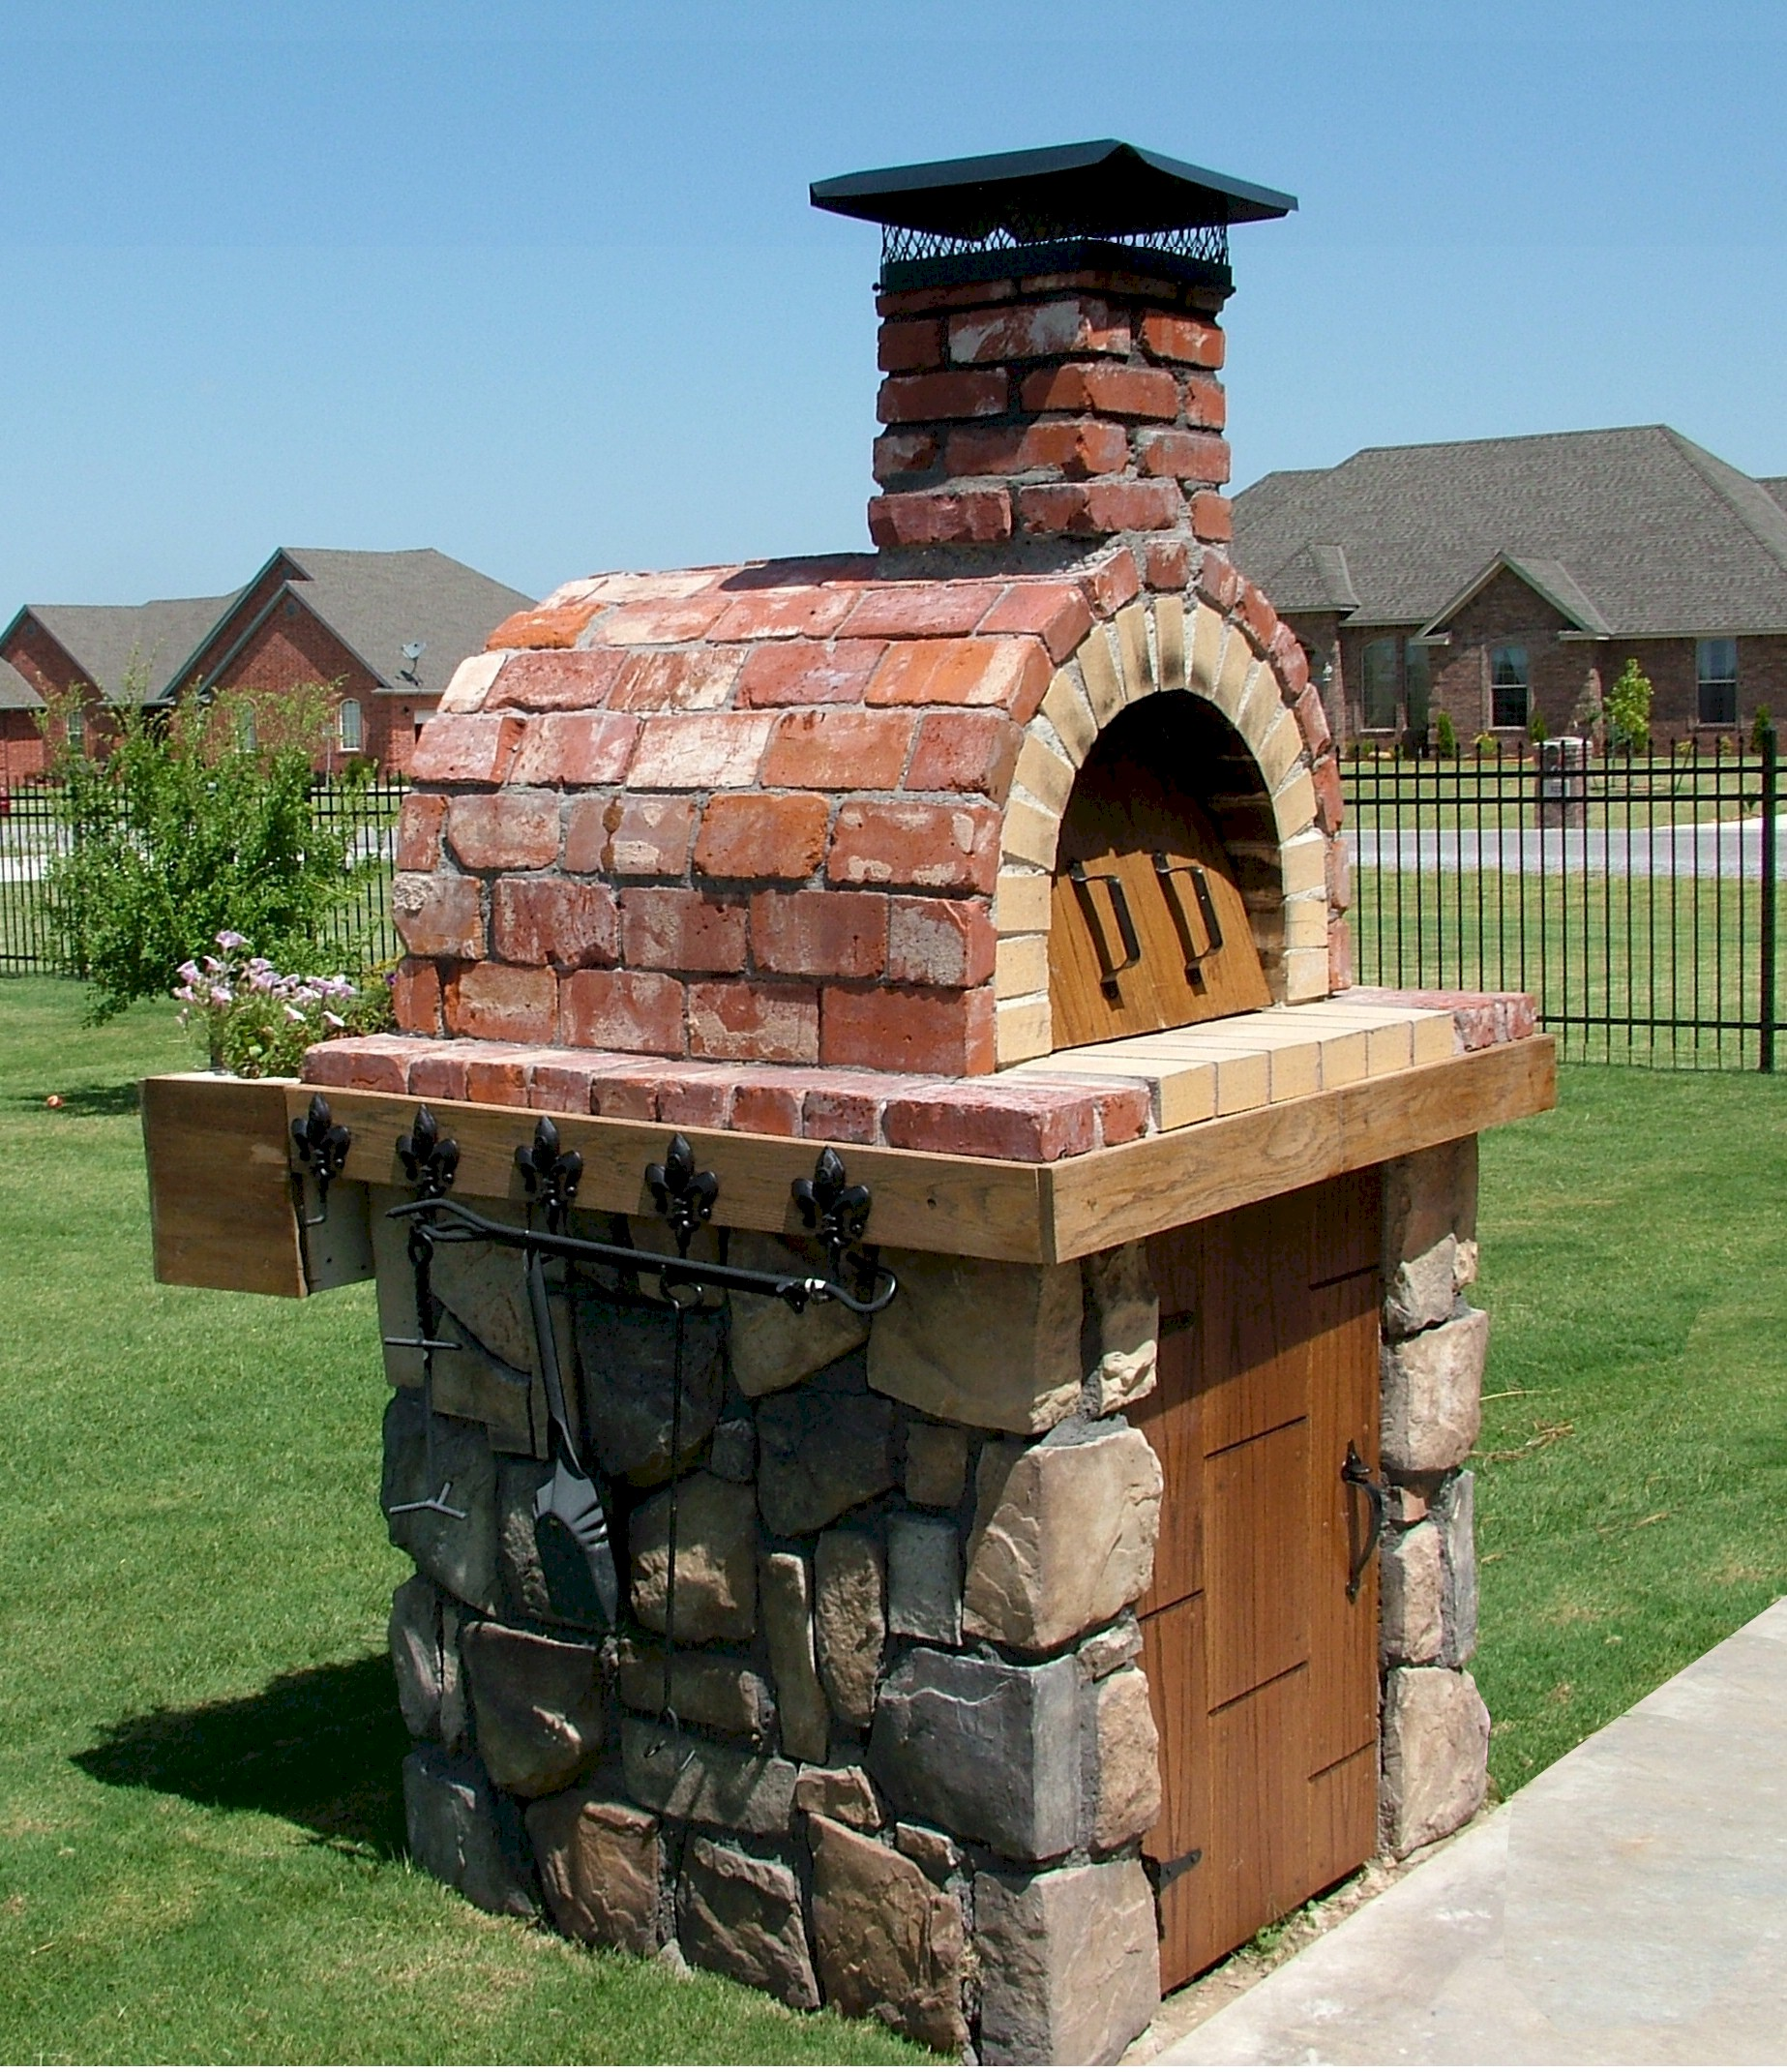 patio covered fireplace with patios and viewing pizza gallery fireplaces oven ovens kitchens l outdoor